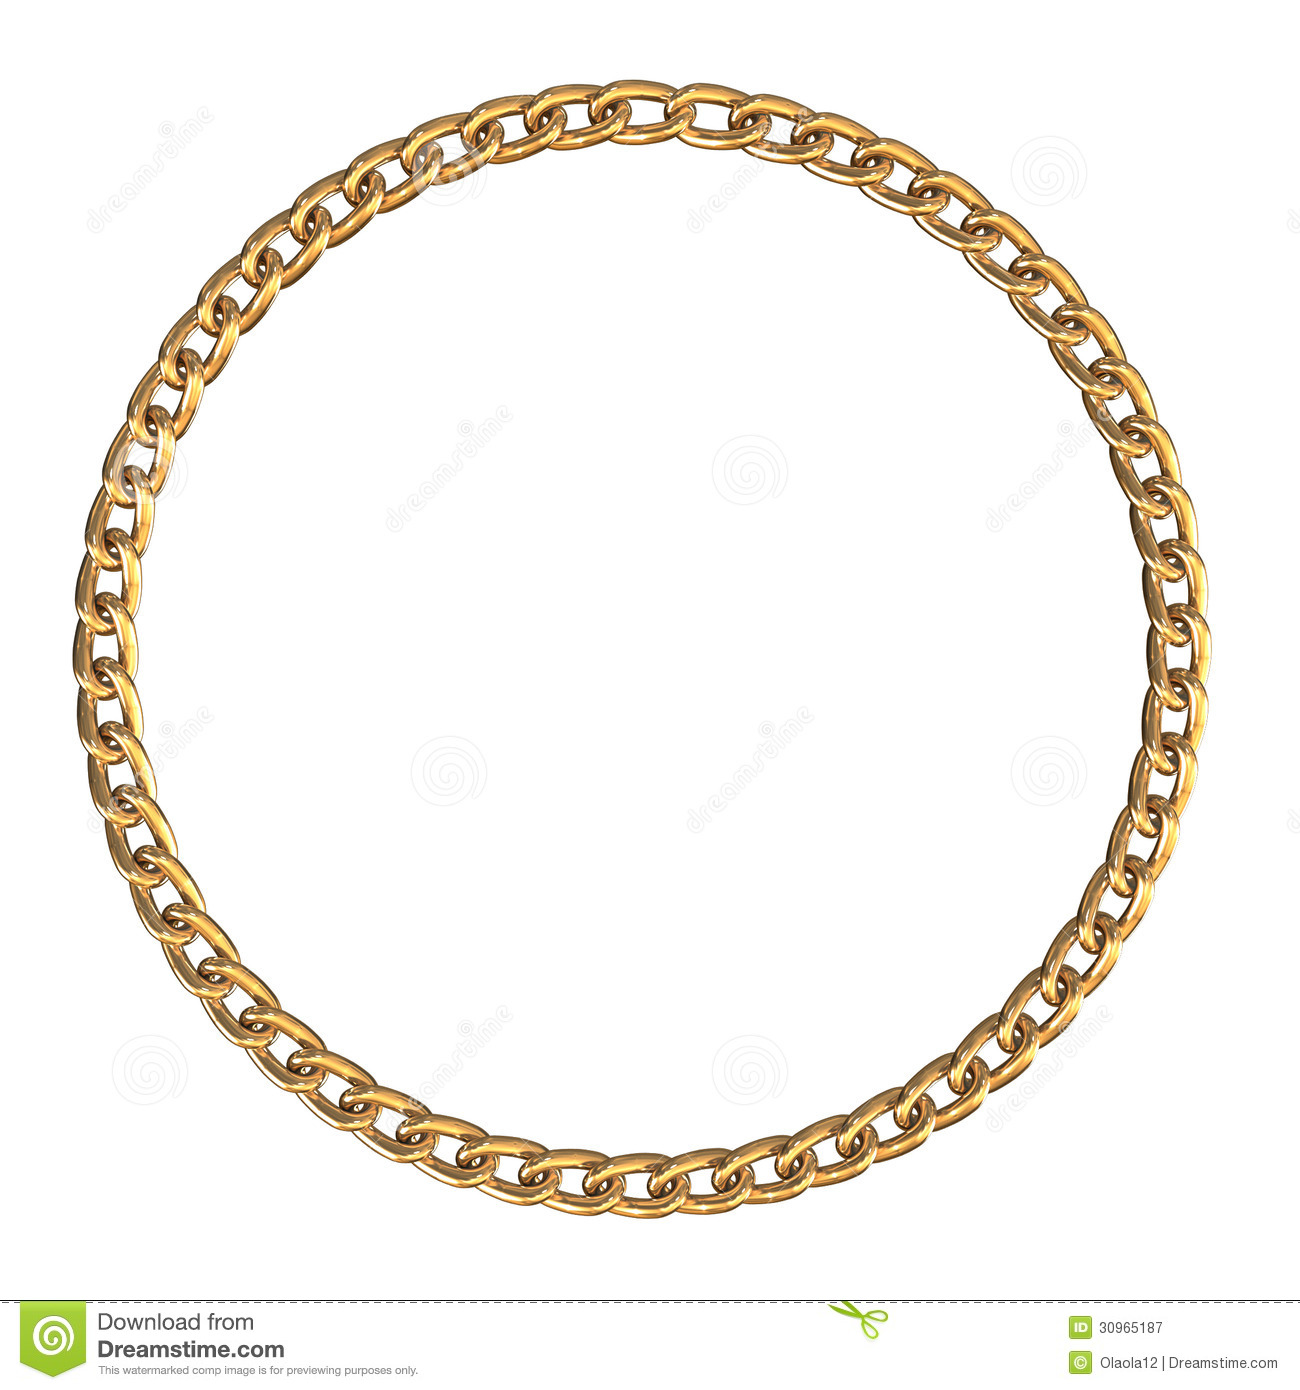 Frame With Golden Chain Royalty Free Stock Photography